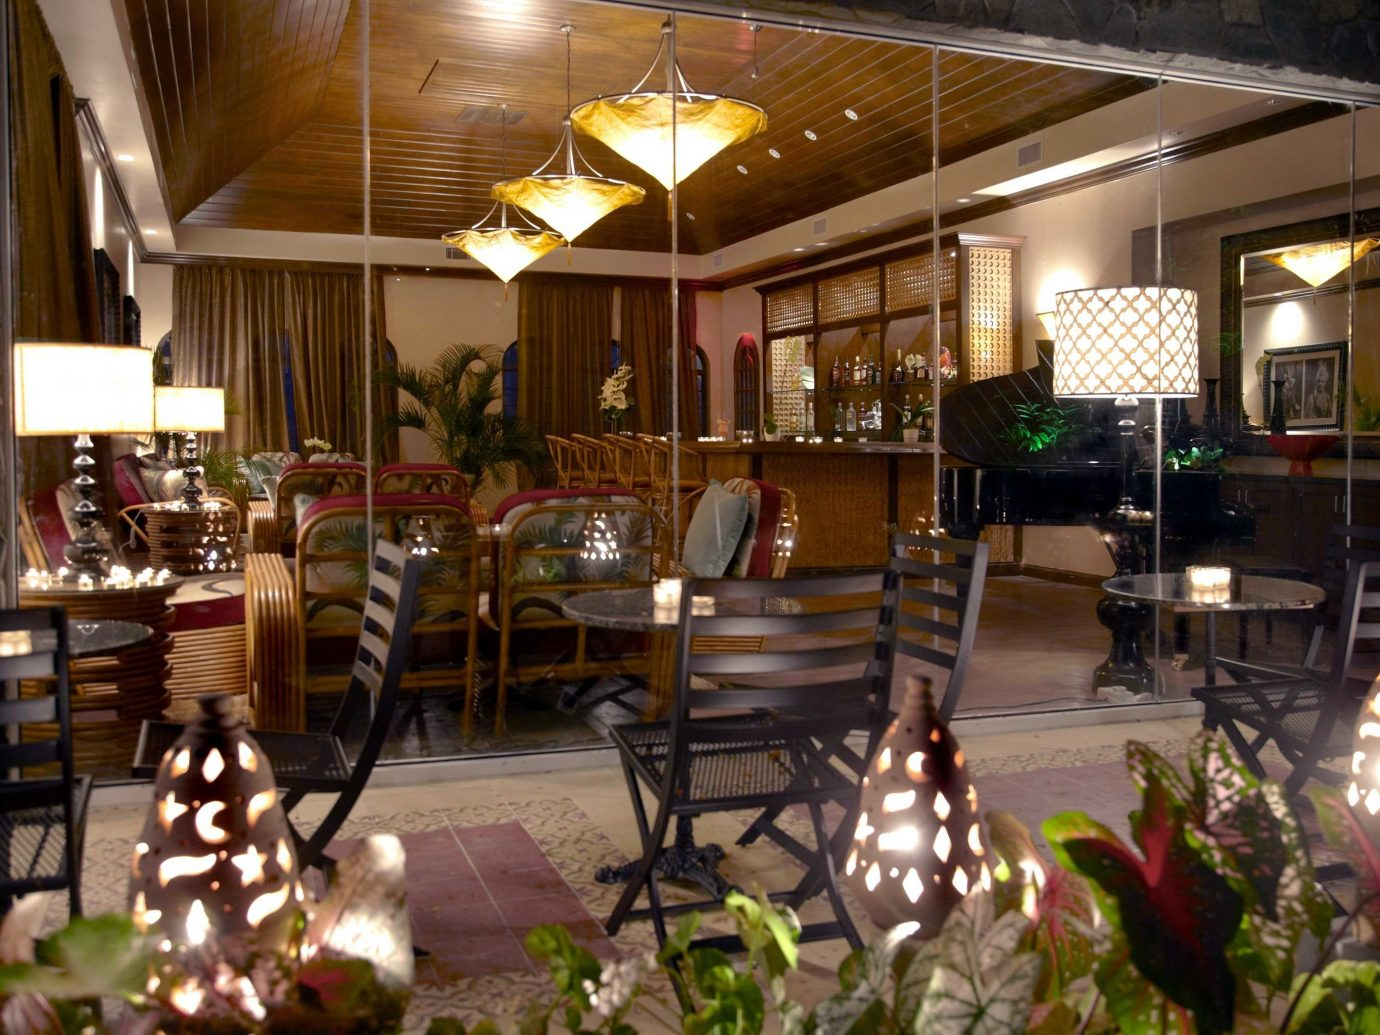 All-Inclusive Resorts Bar caribbean Dining Drink Eat Hip Scenic views Tropical indoor table ceiling meal room restaurant Lobby lighting interior design Resort furniture